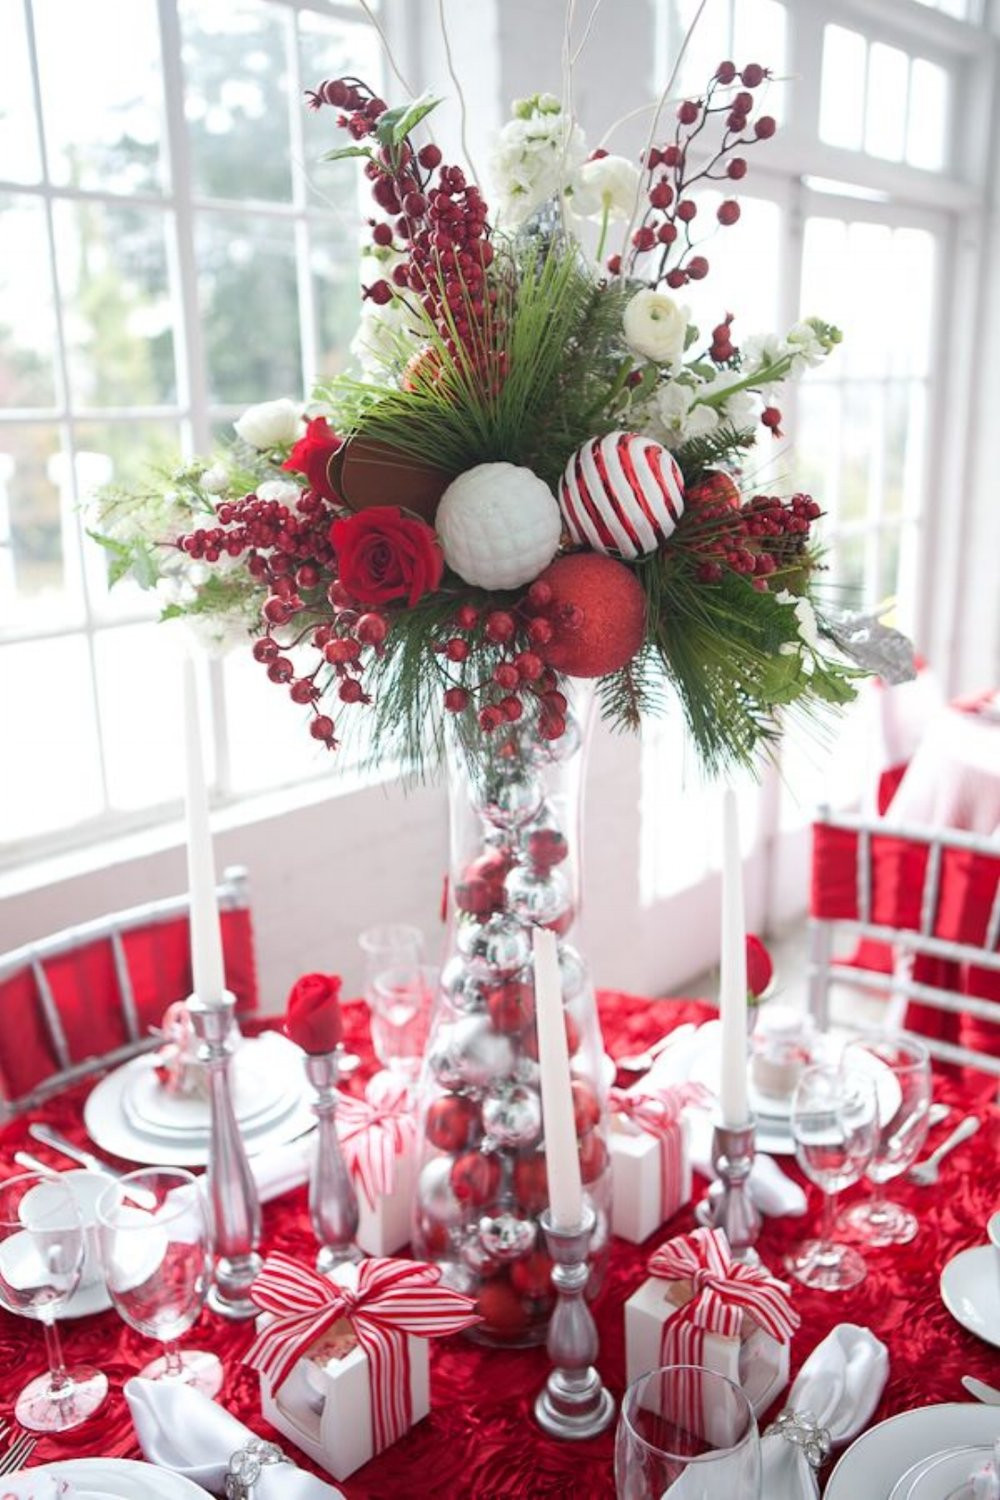 Christmas Decoration Ideas New 34 Gorgeous Christmas Tablescapes and Centerpiece Ideas Of Amazing 45 Photos Christmas Decoration Ideas